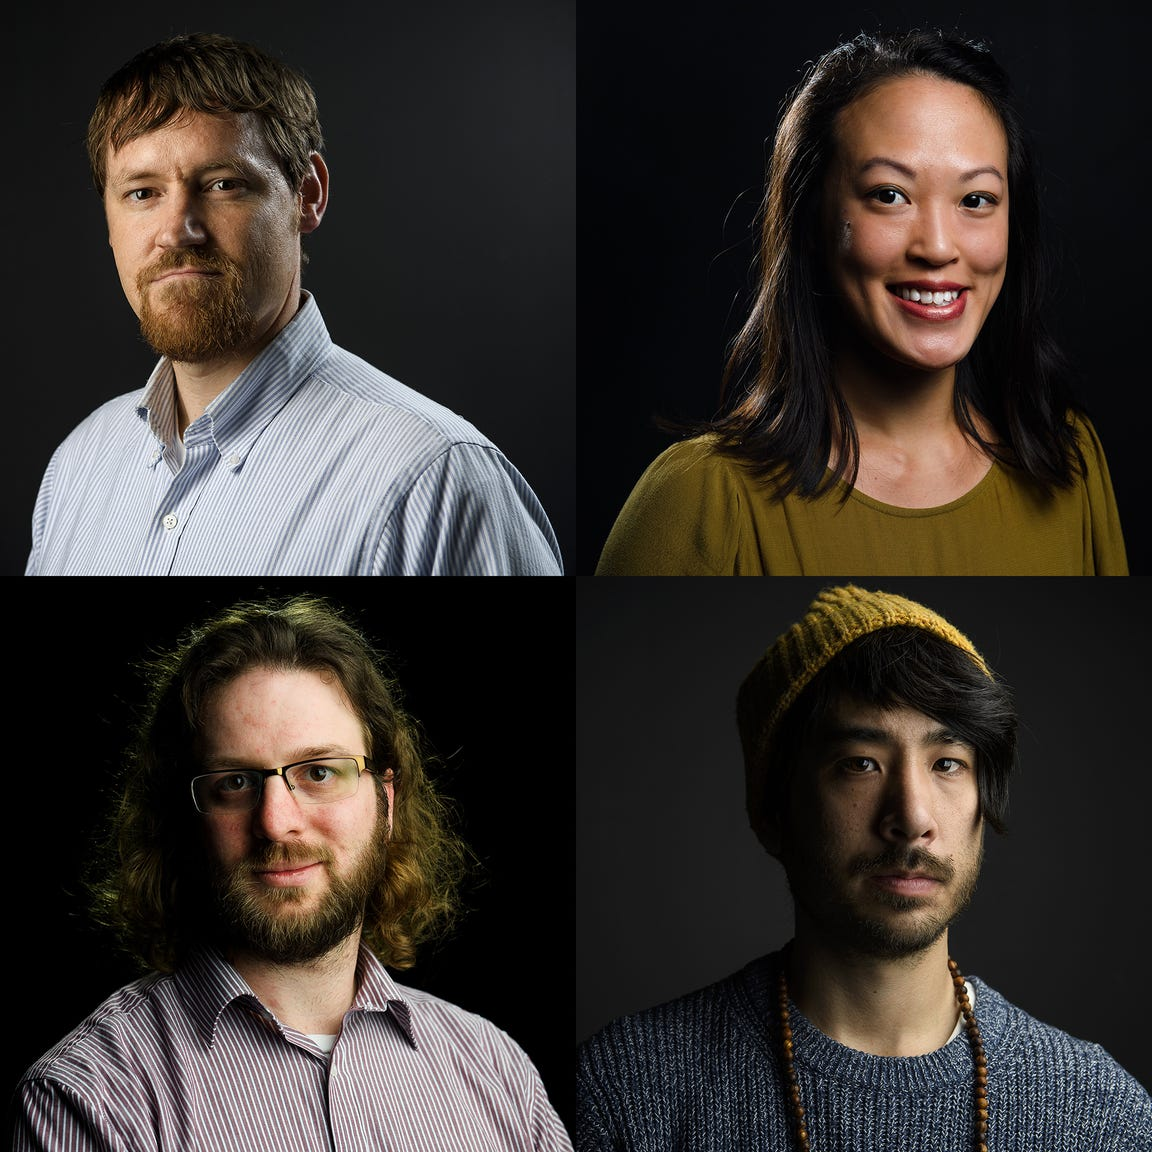 Journalists on the TAKEN project team in South Carolina: Nate Cary, Anna Lee, Mike Ellis and Josh Morgan.